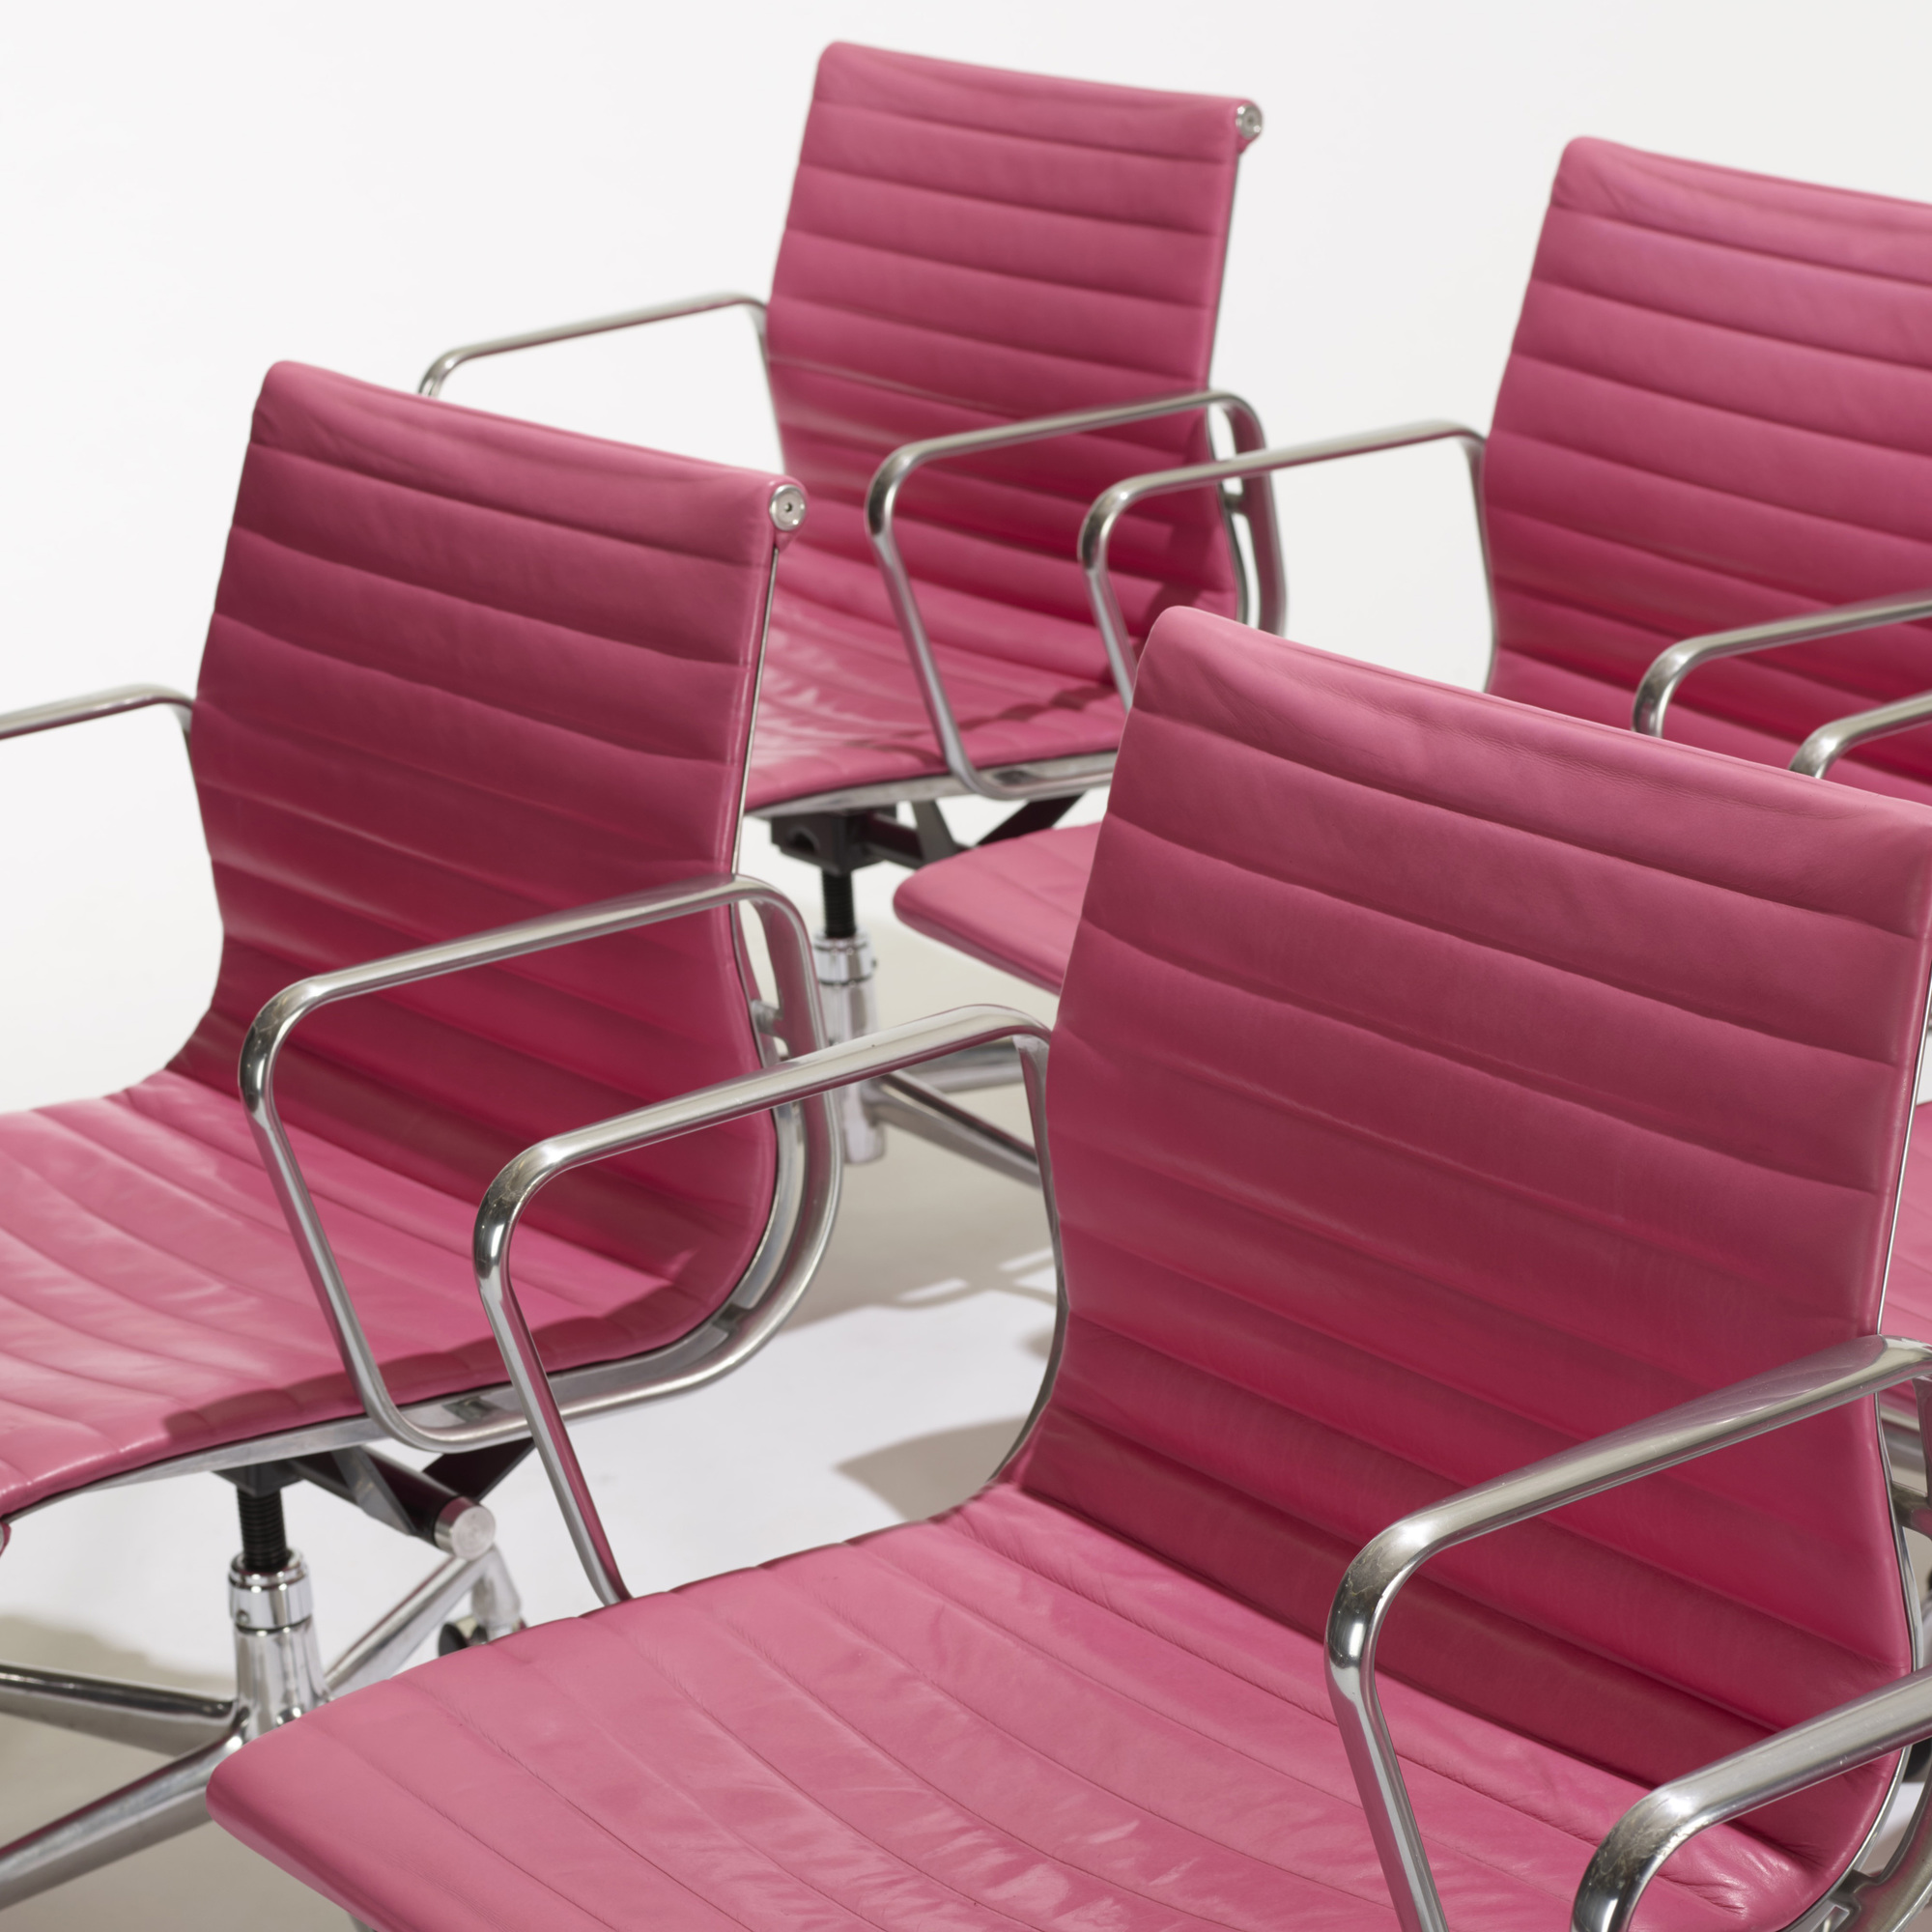 127: Charles and Ray Eames / Aluminum Group office chairs, set of eight (3 of 3)